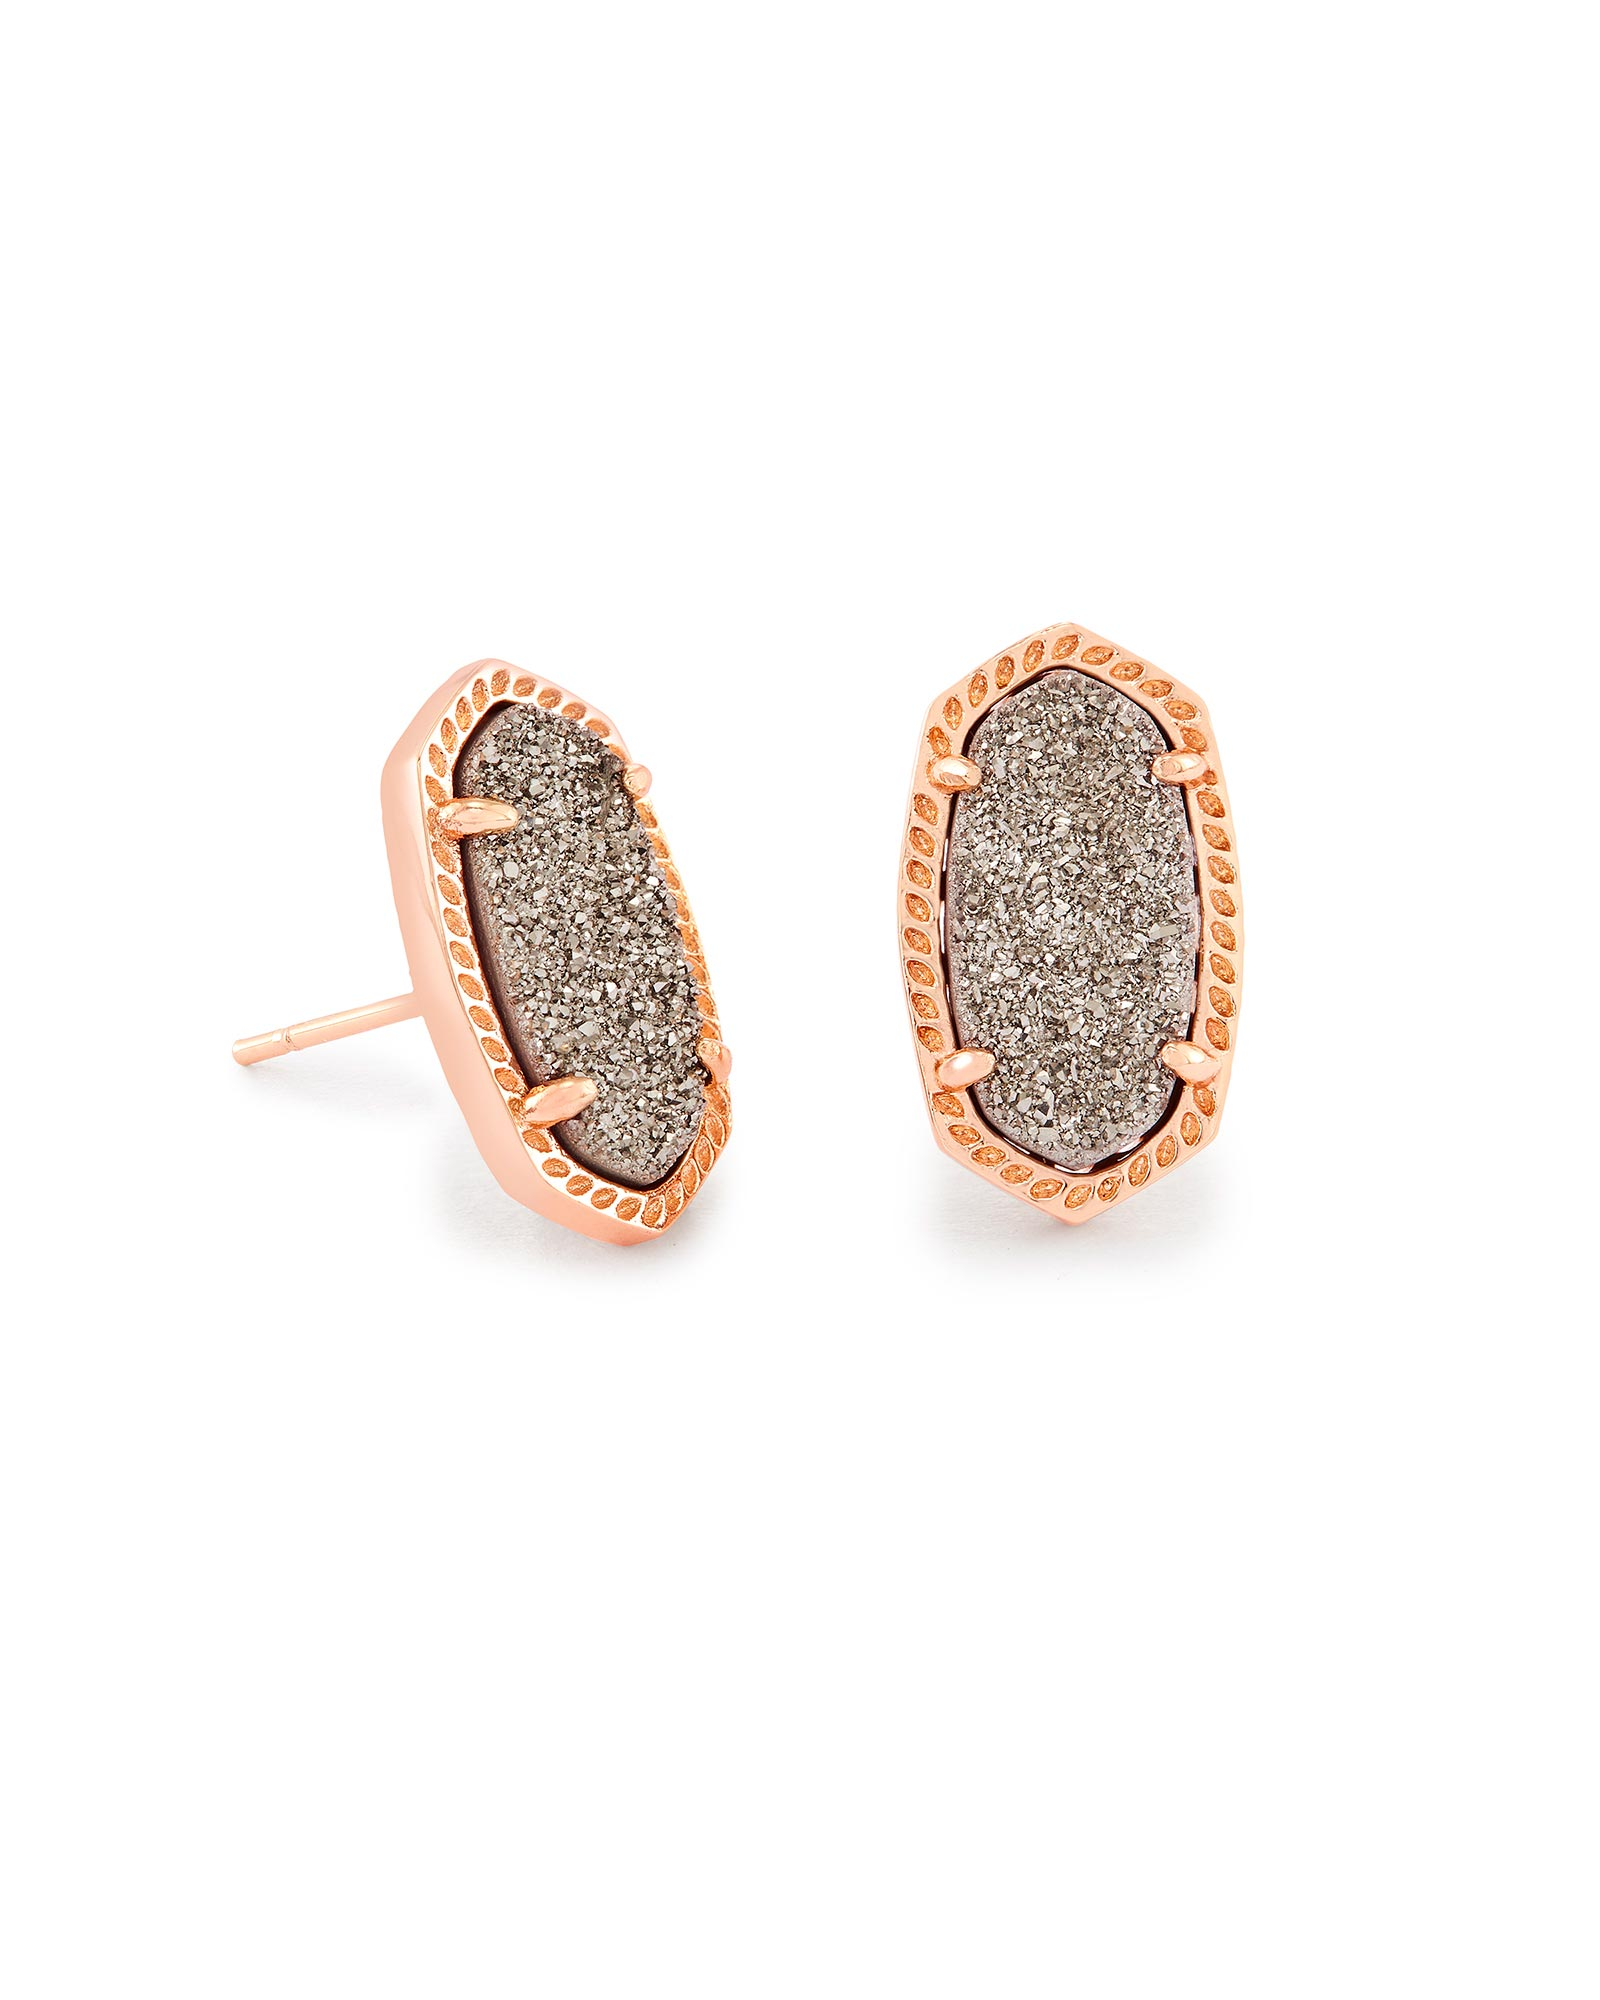 Ellie Rose Gold Stud Earrings in Platinum Drusy